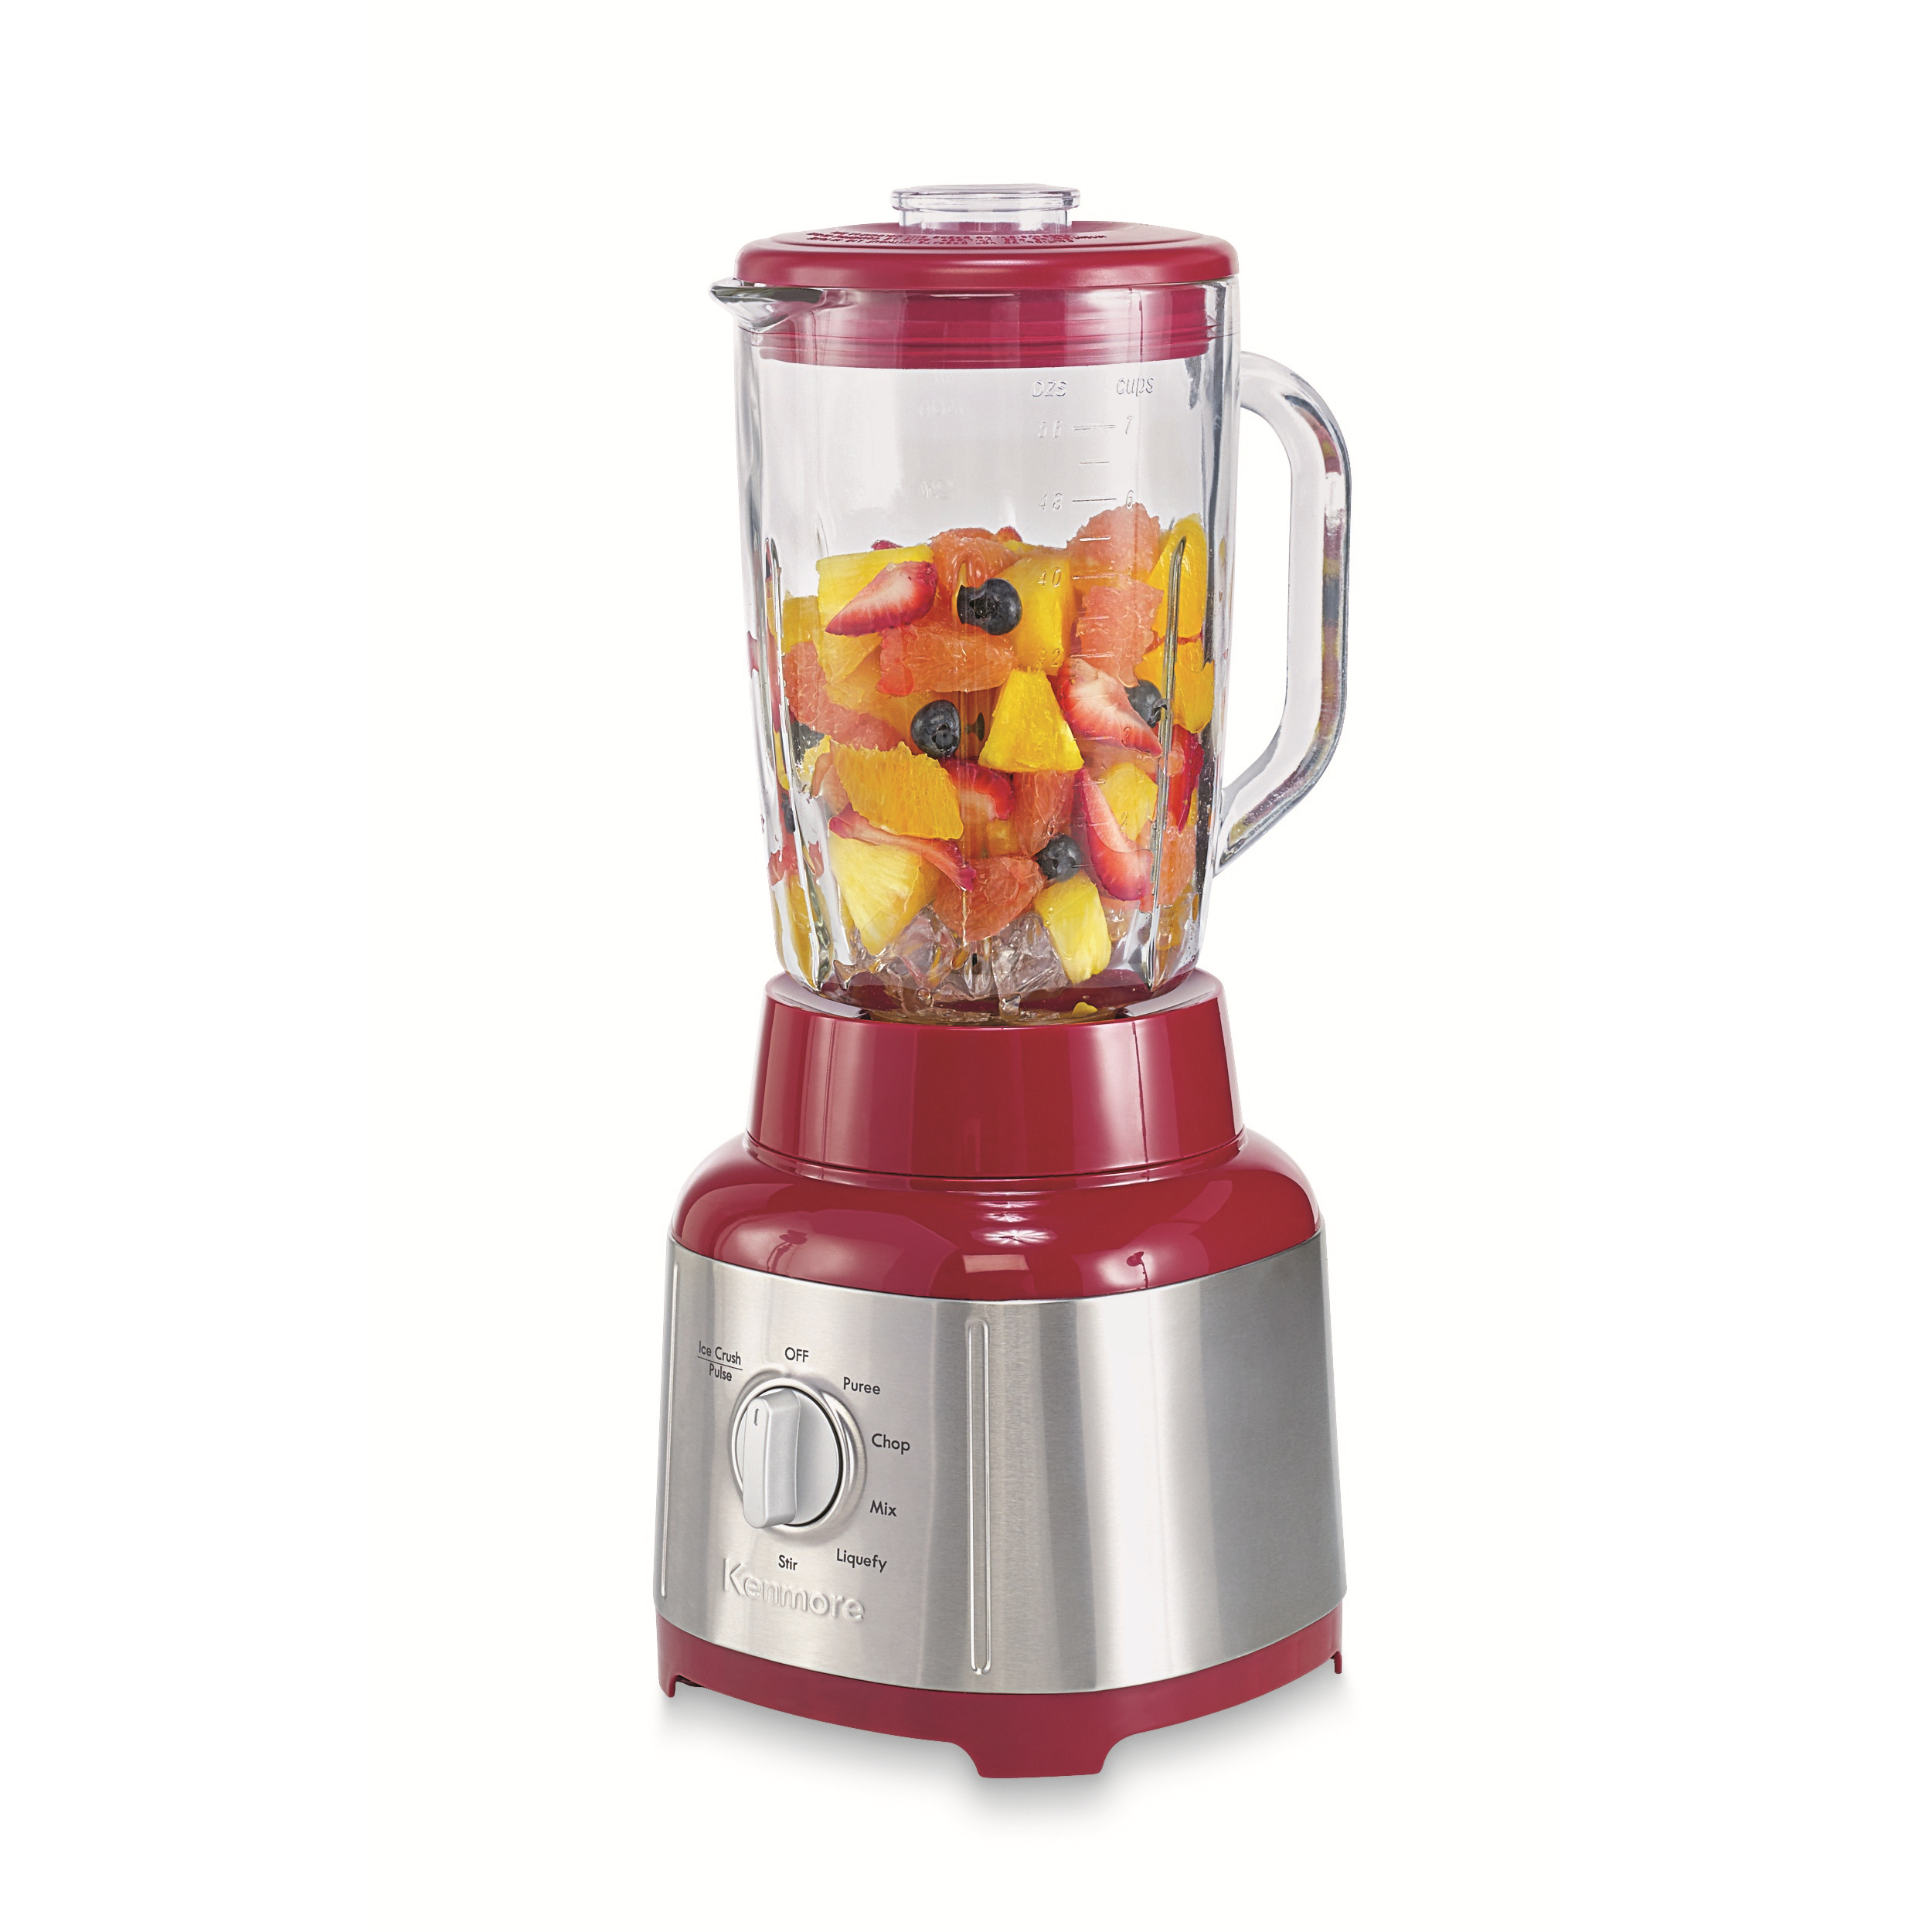 Kenmore Red 6-Speed Blender